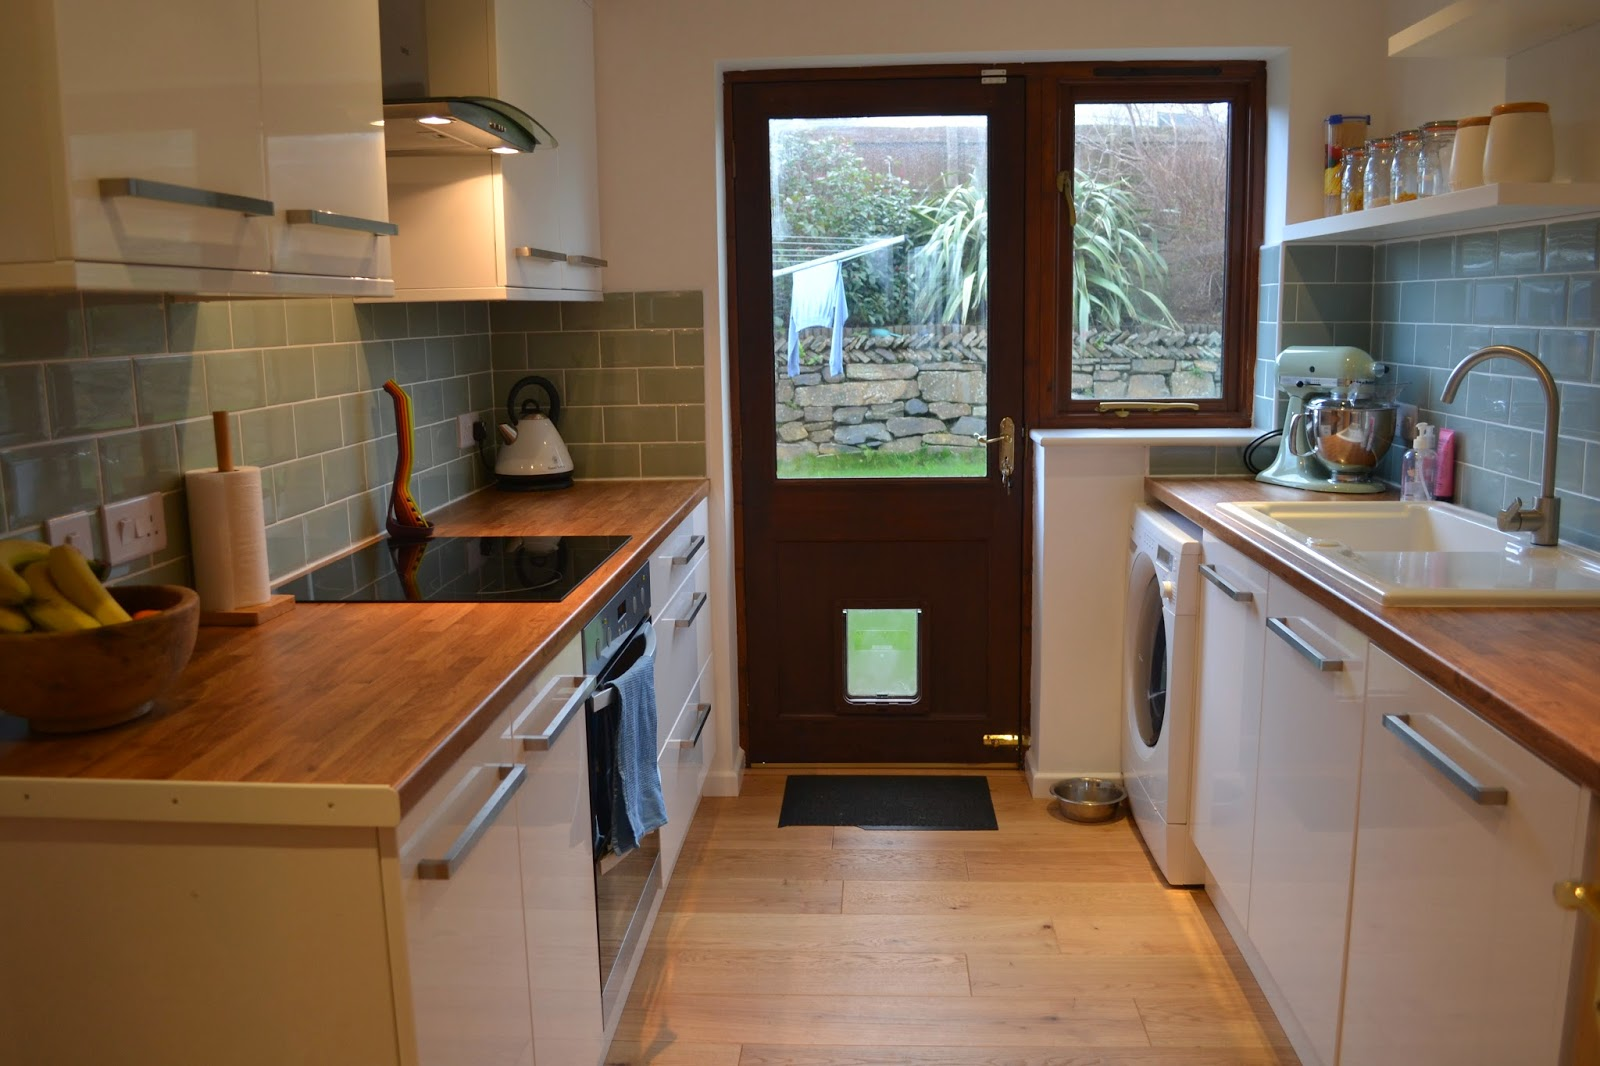 Wickes kitchens exclusive home design for Kitchen 0 finance wickes